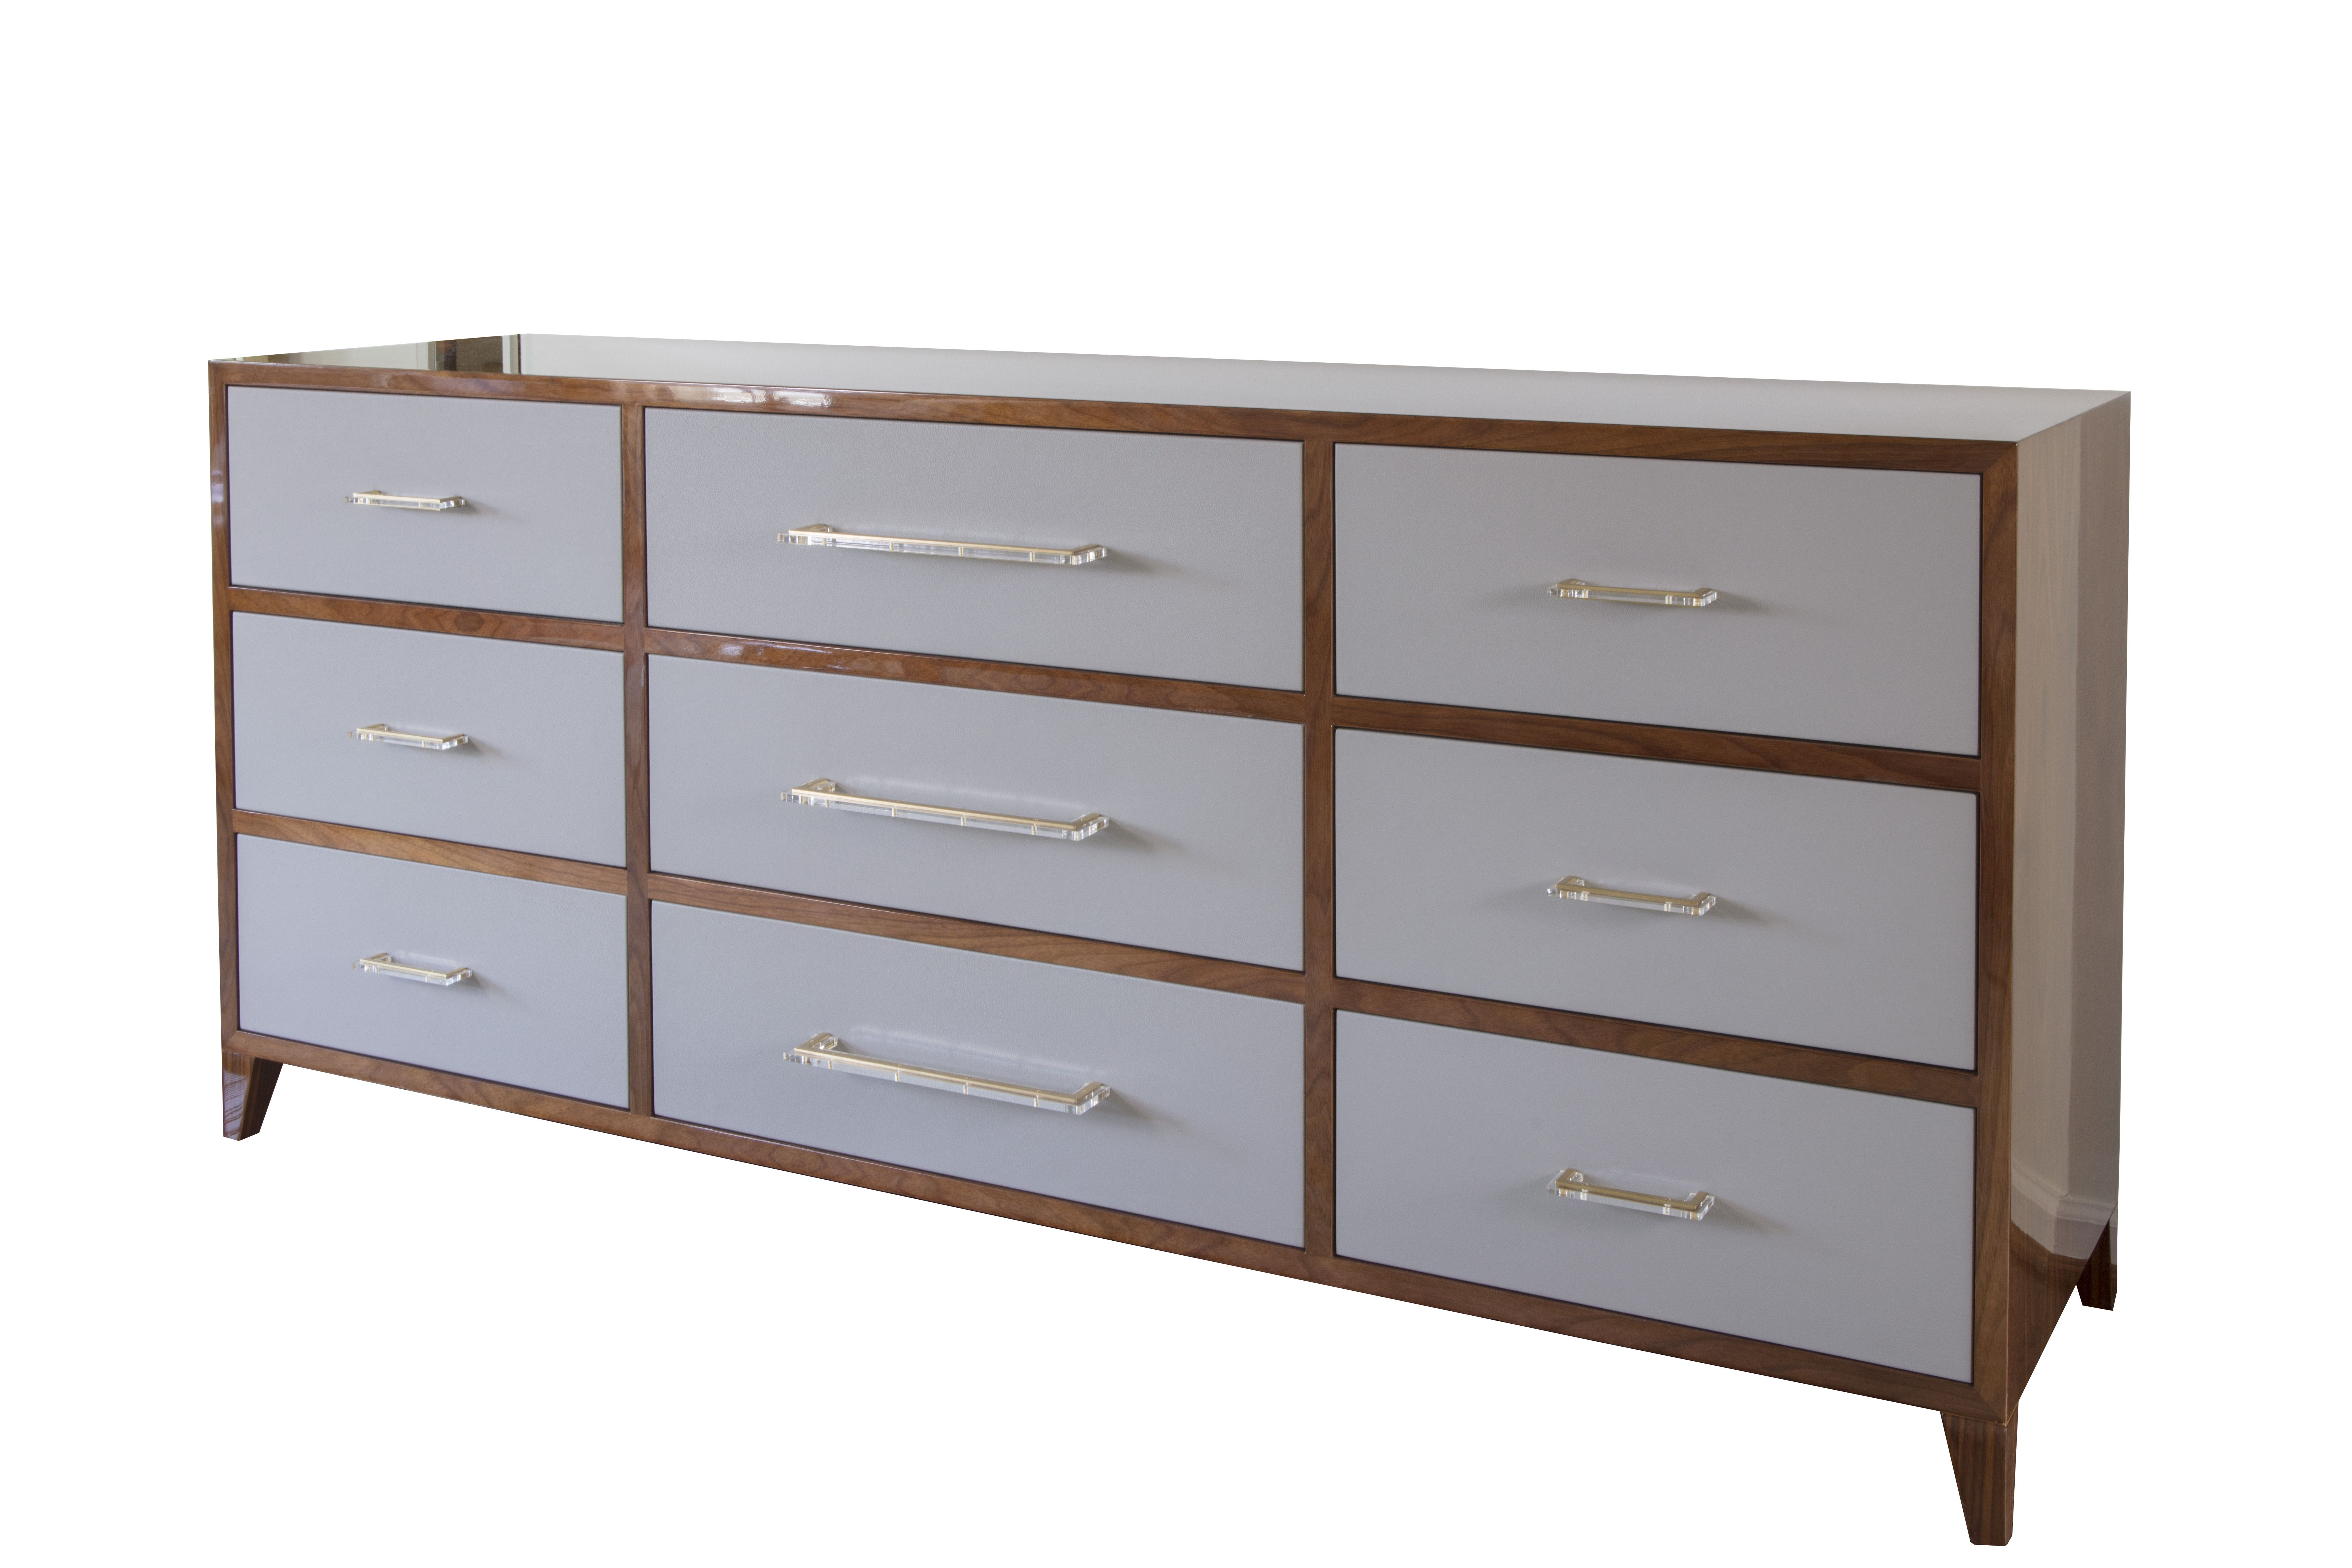 Leather Front Dresser With Media Compartment By Paula Grace Designs Signature Grace Contemporary Dresser Design Dresser Design Contemporary Dresser [ 5461 x 8192 Pixel ]